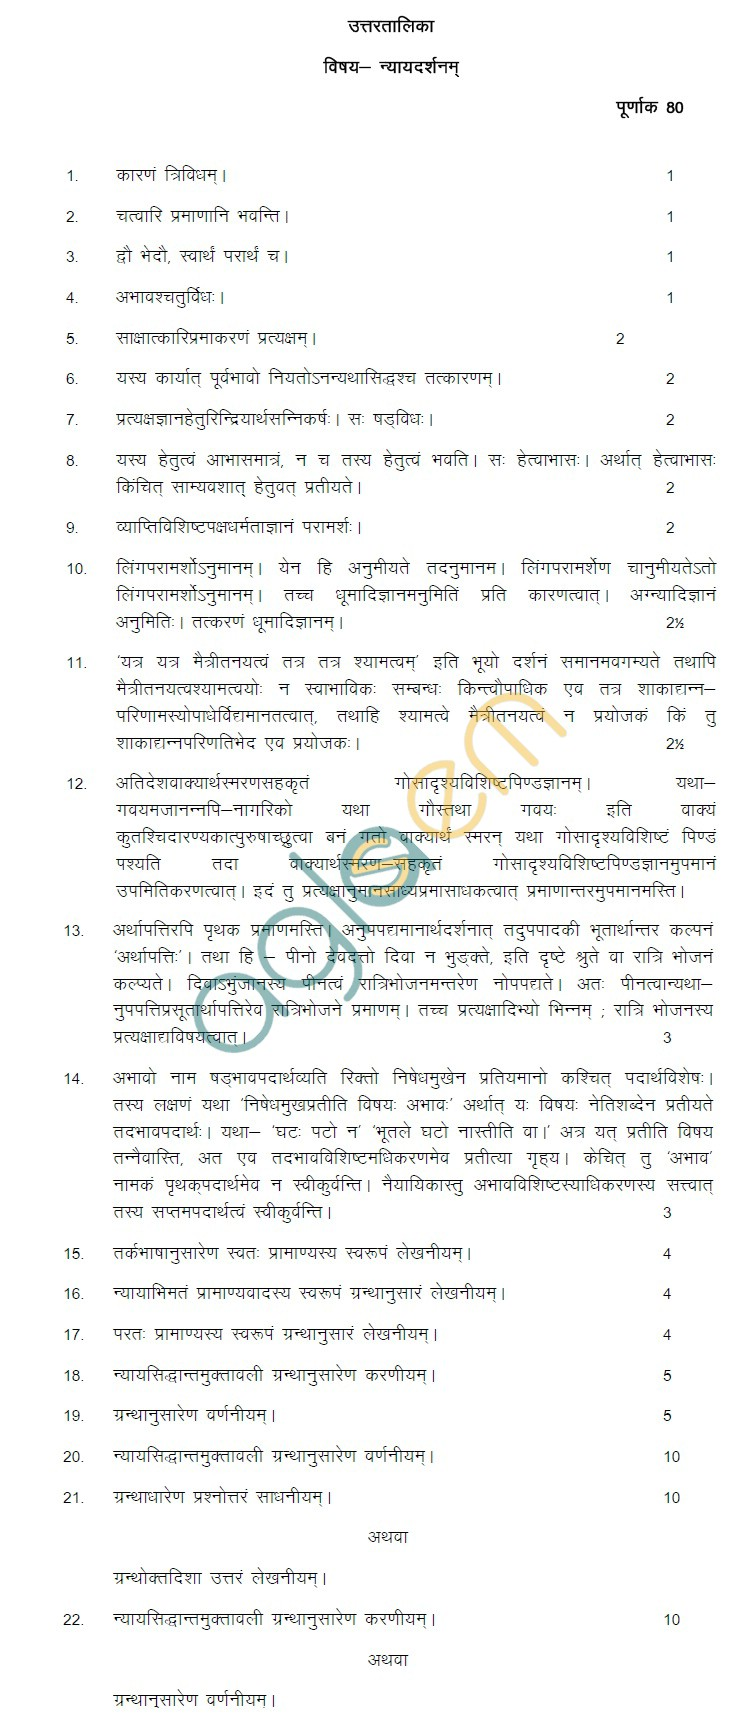 Rajasthan Board Class 12 Nayay Darshan Model Question Paper